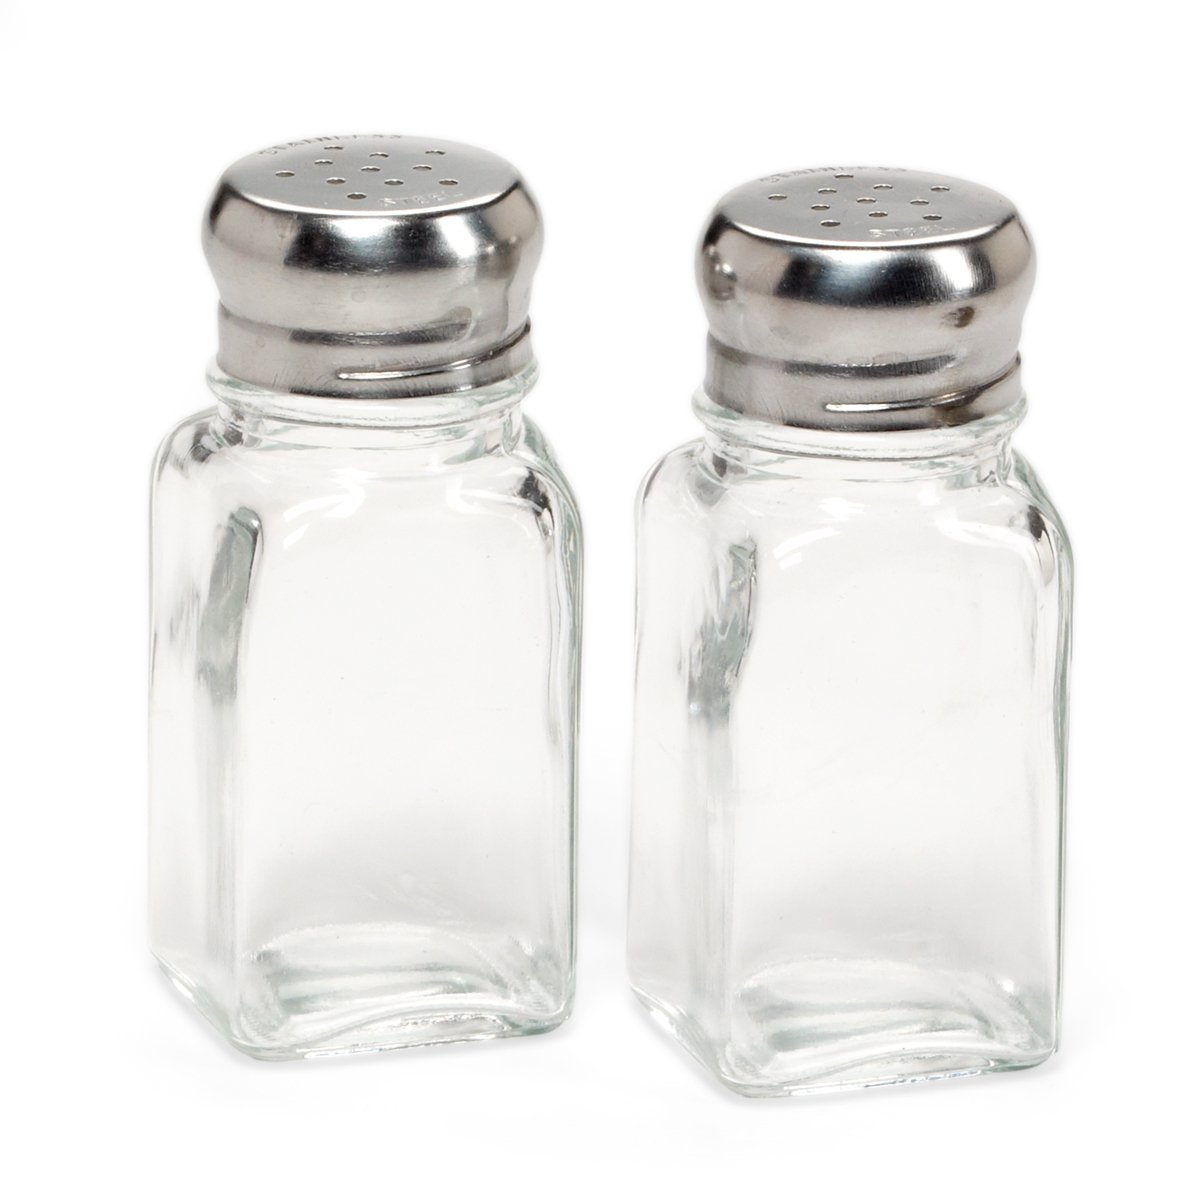 Farberware Classic Salt and Pepper Shaker (2-Ounce) Lifetime Brands 5080366